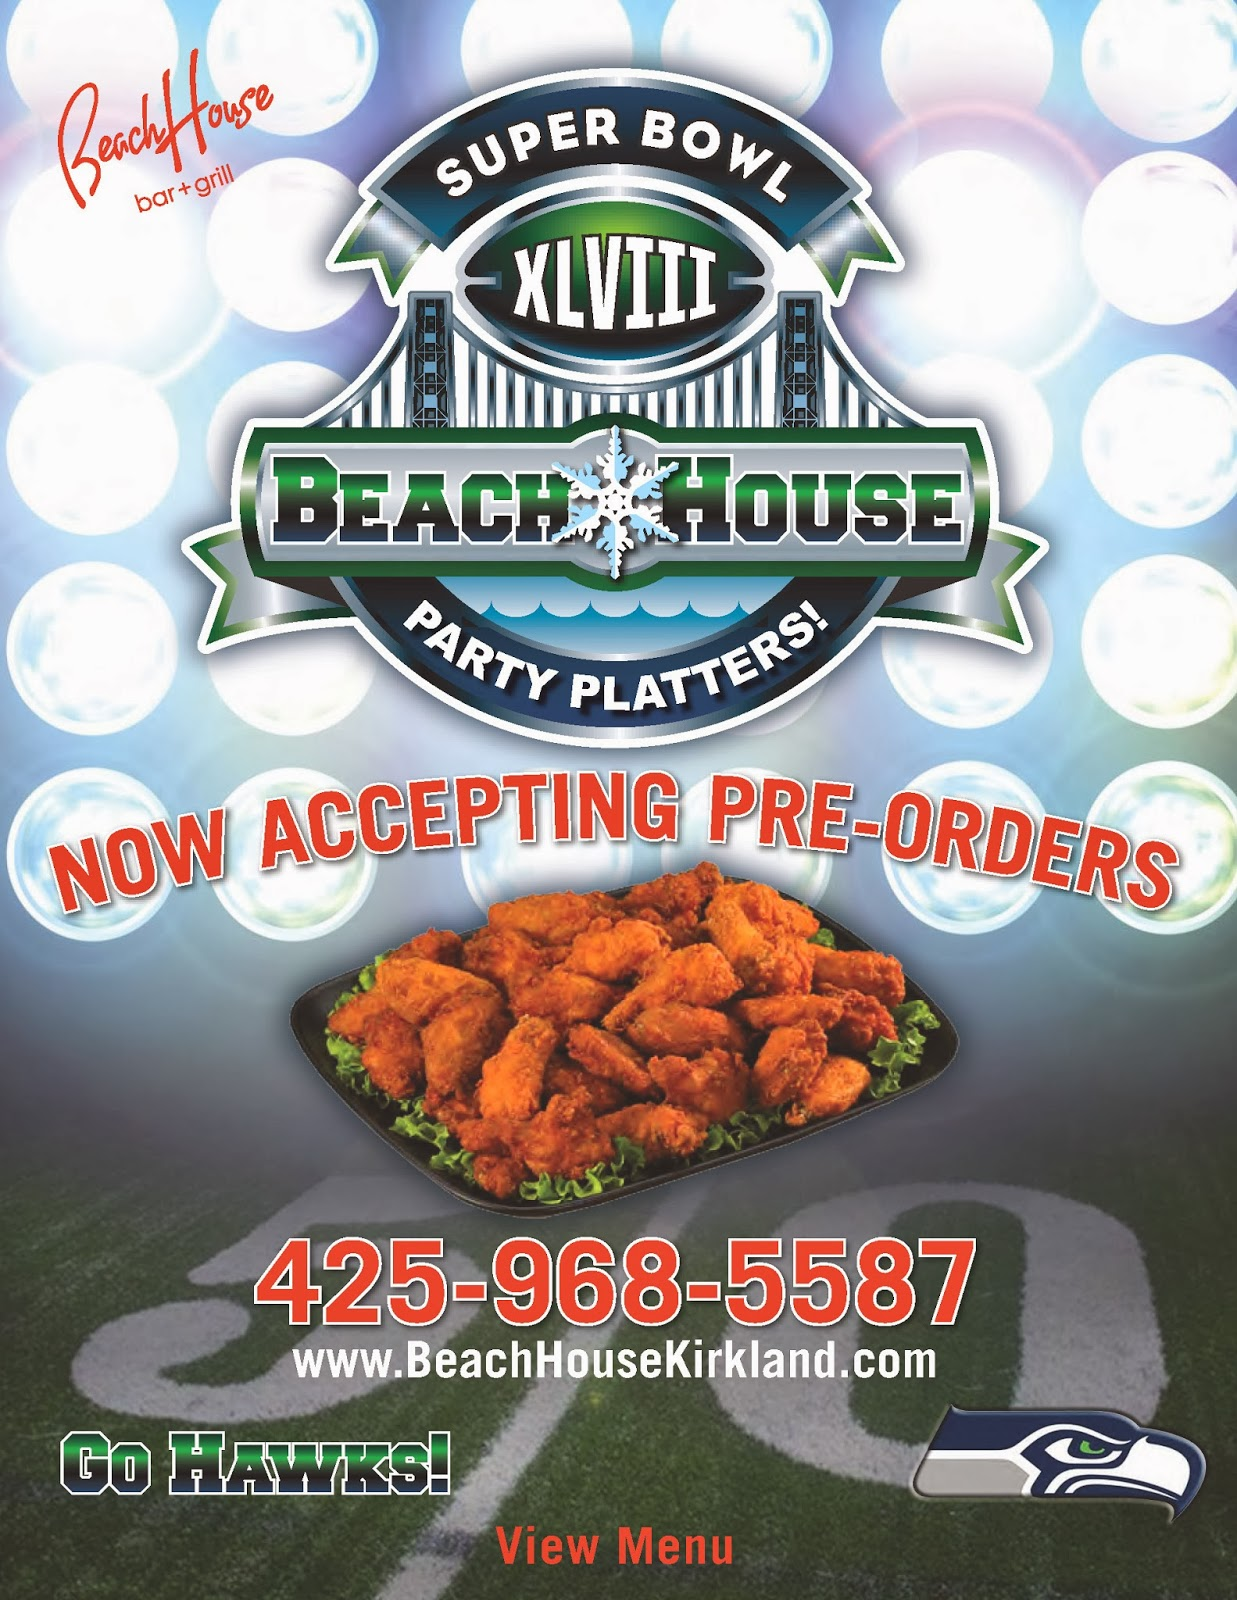 Super Bowl Party Platters! Order NOW!